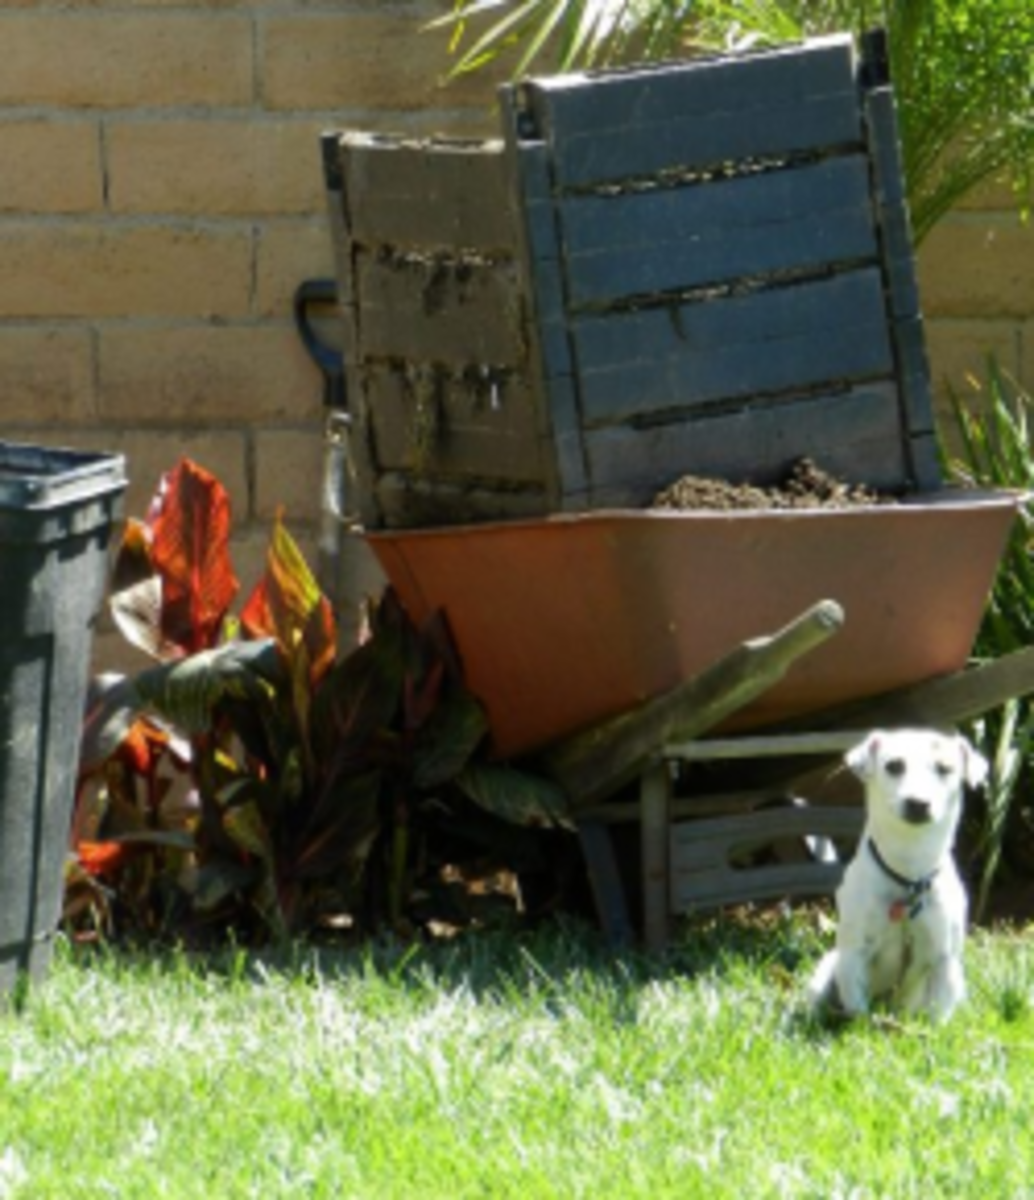 Compost bin and Hank